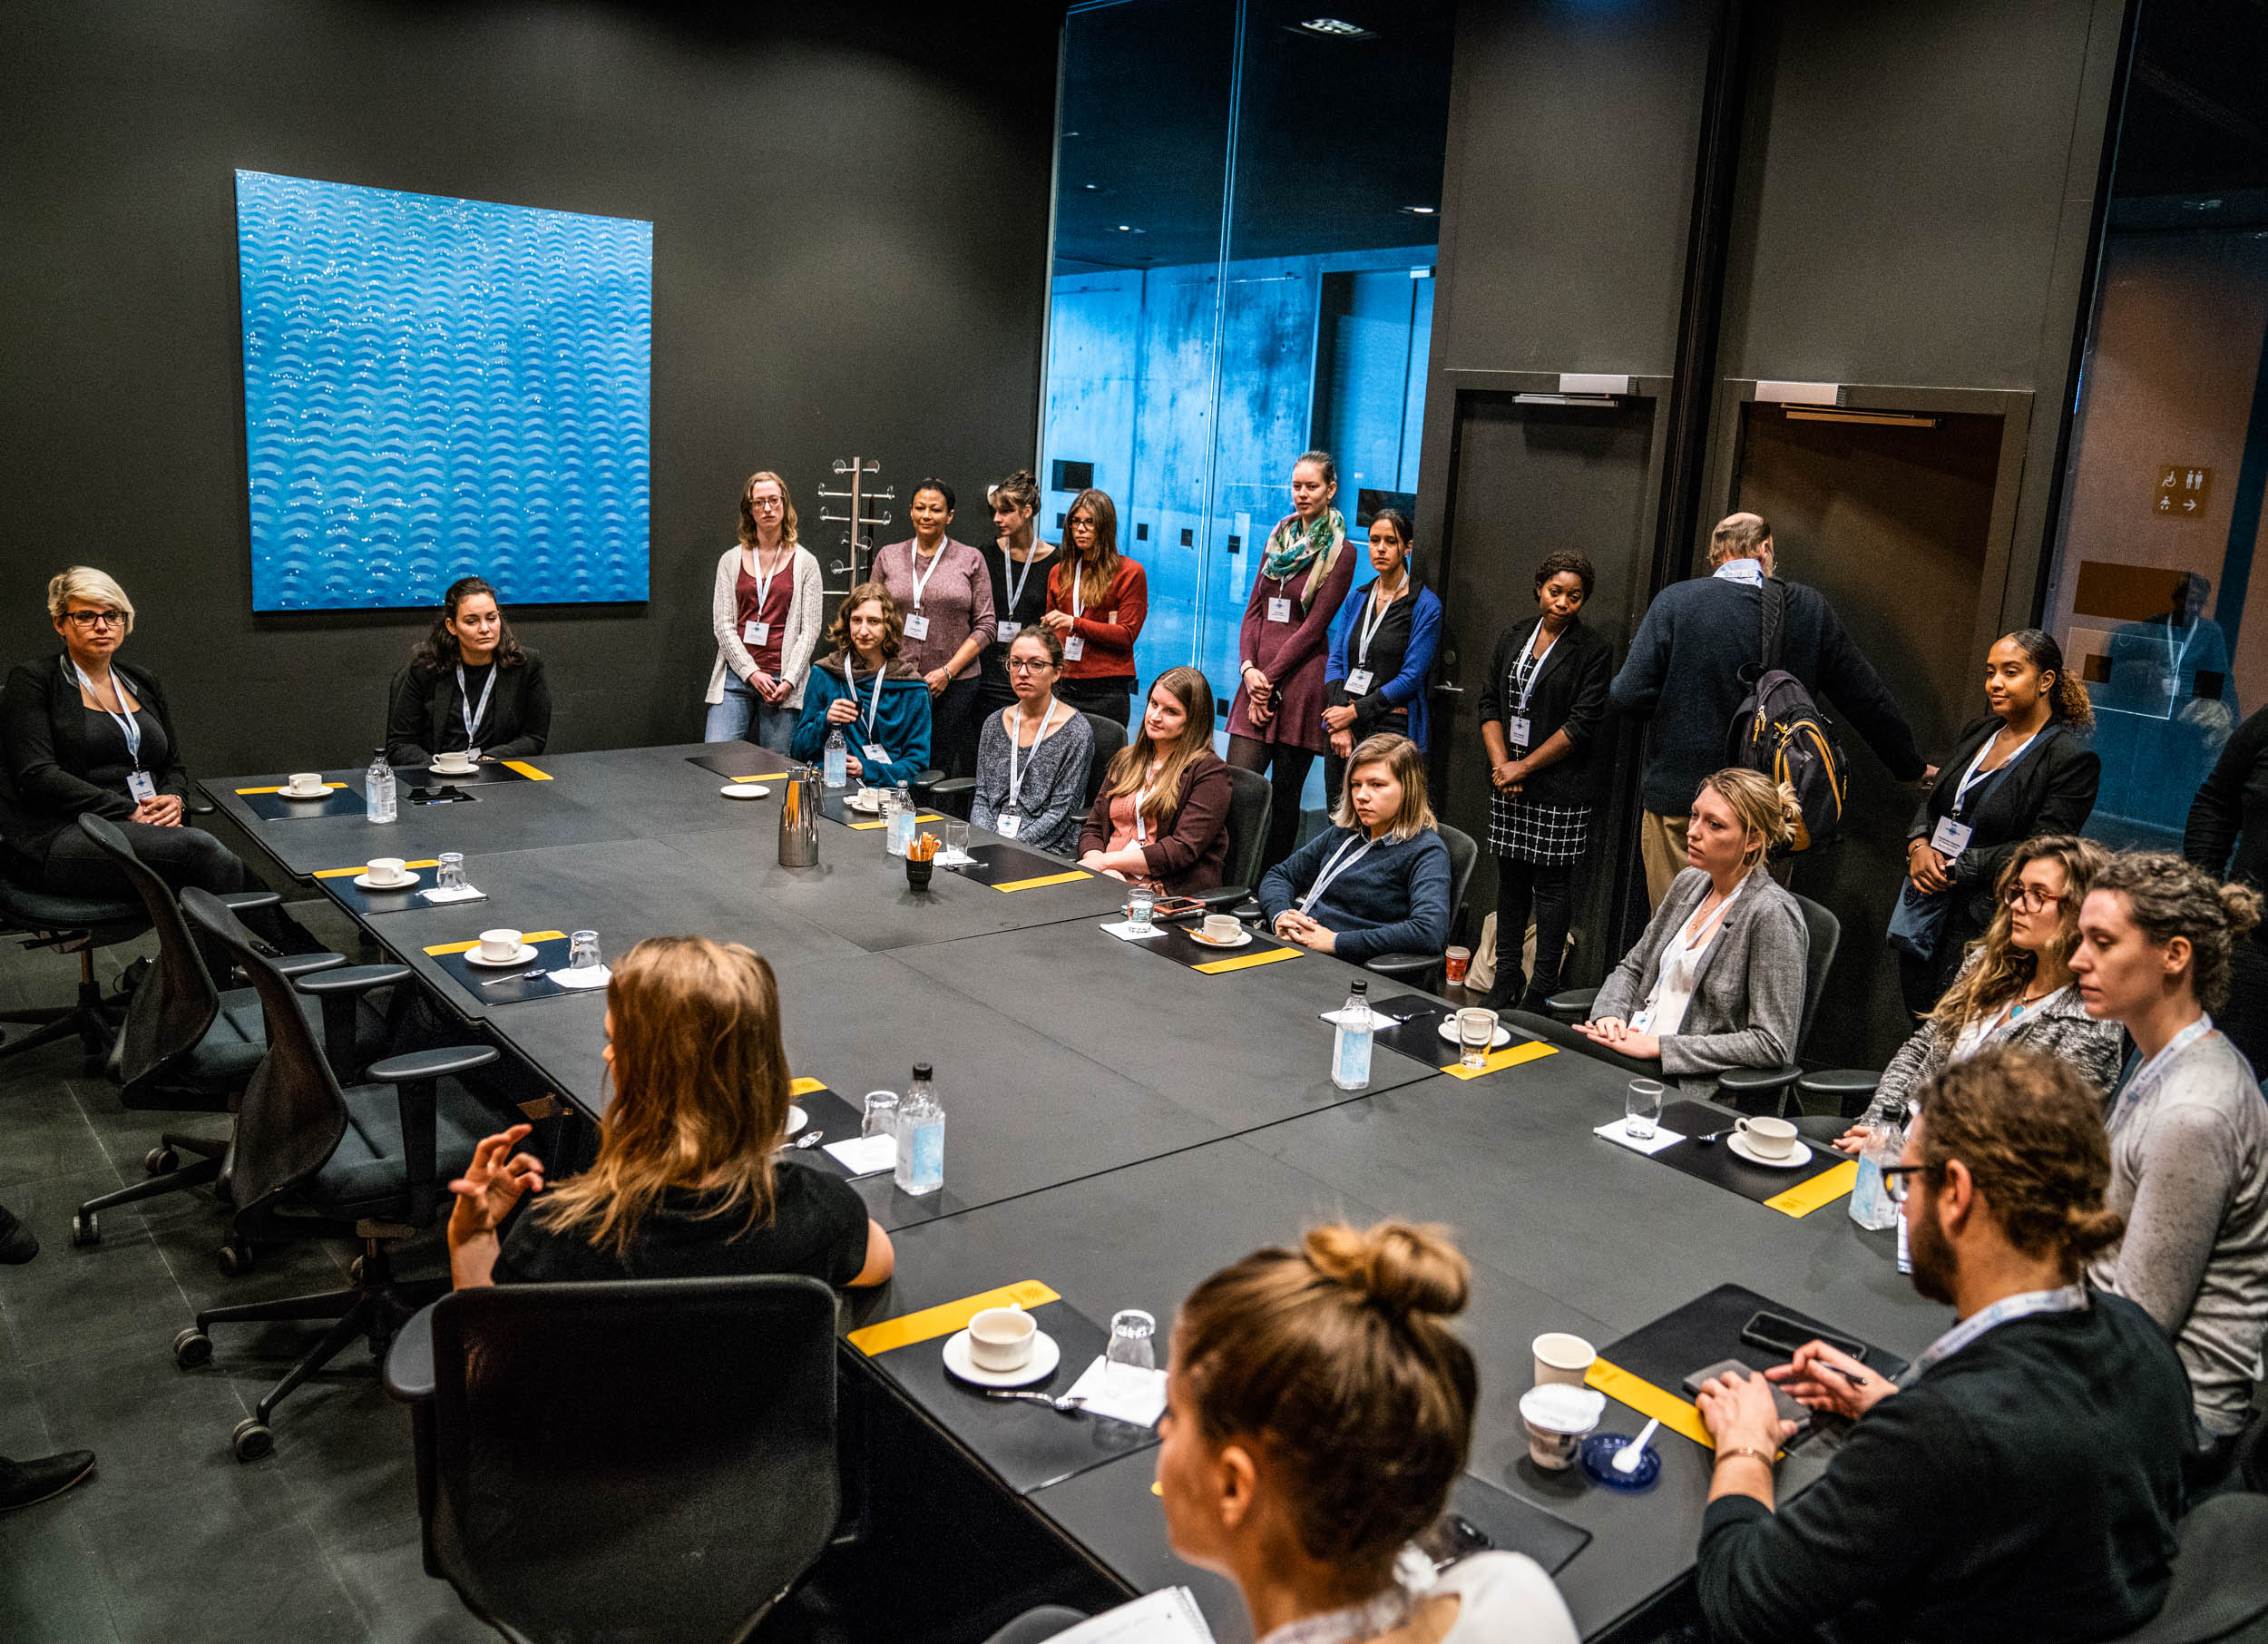 With the Assembly's extensive program as many as 16 breakout sessions can be simultaneously going on throughout Harpa. All pictures above: JONAA©Óli Haukur Myrdal